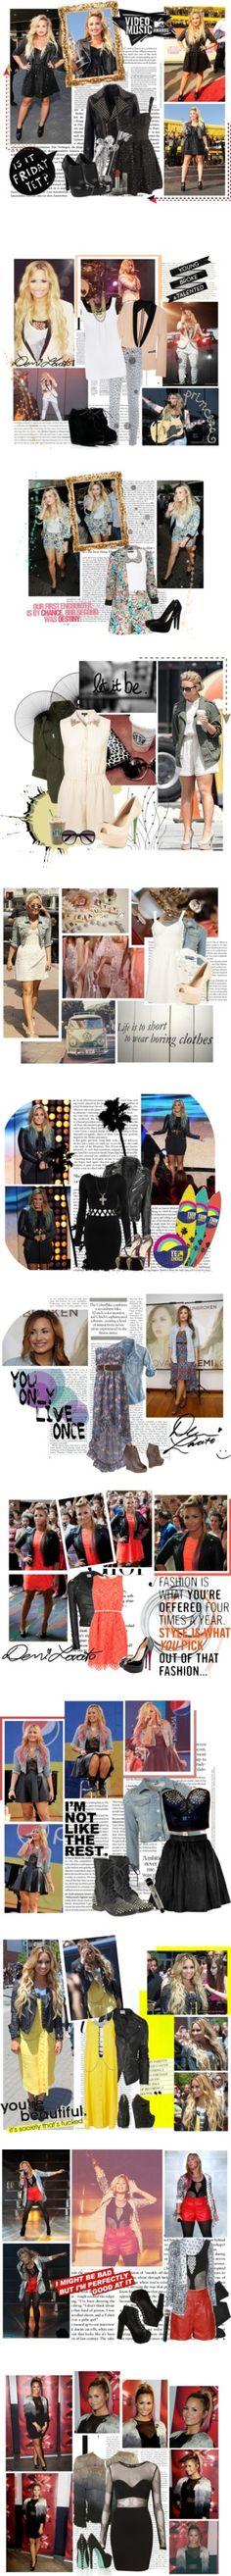 """""""Dress Like Demi Lovato ♥"""" by chhoff23 ❤ liked on Polyvore"""